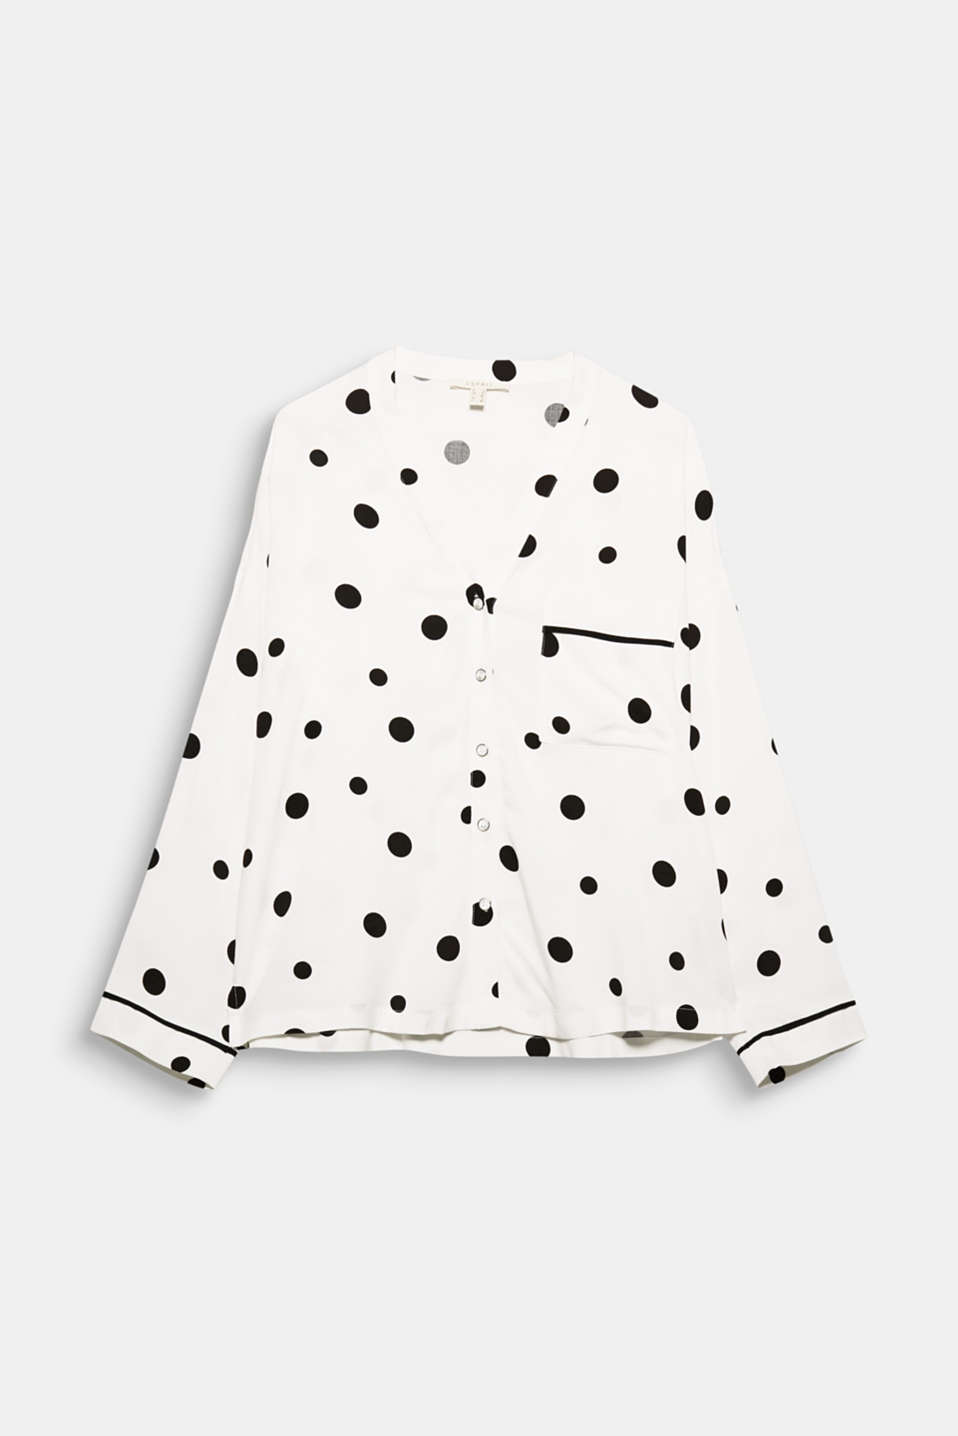 Favourite blouse: this blouse wows with a charming polka dot pattern and a casually figure-skimming shape.